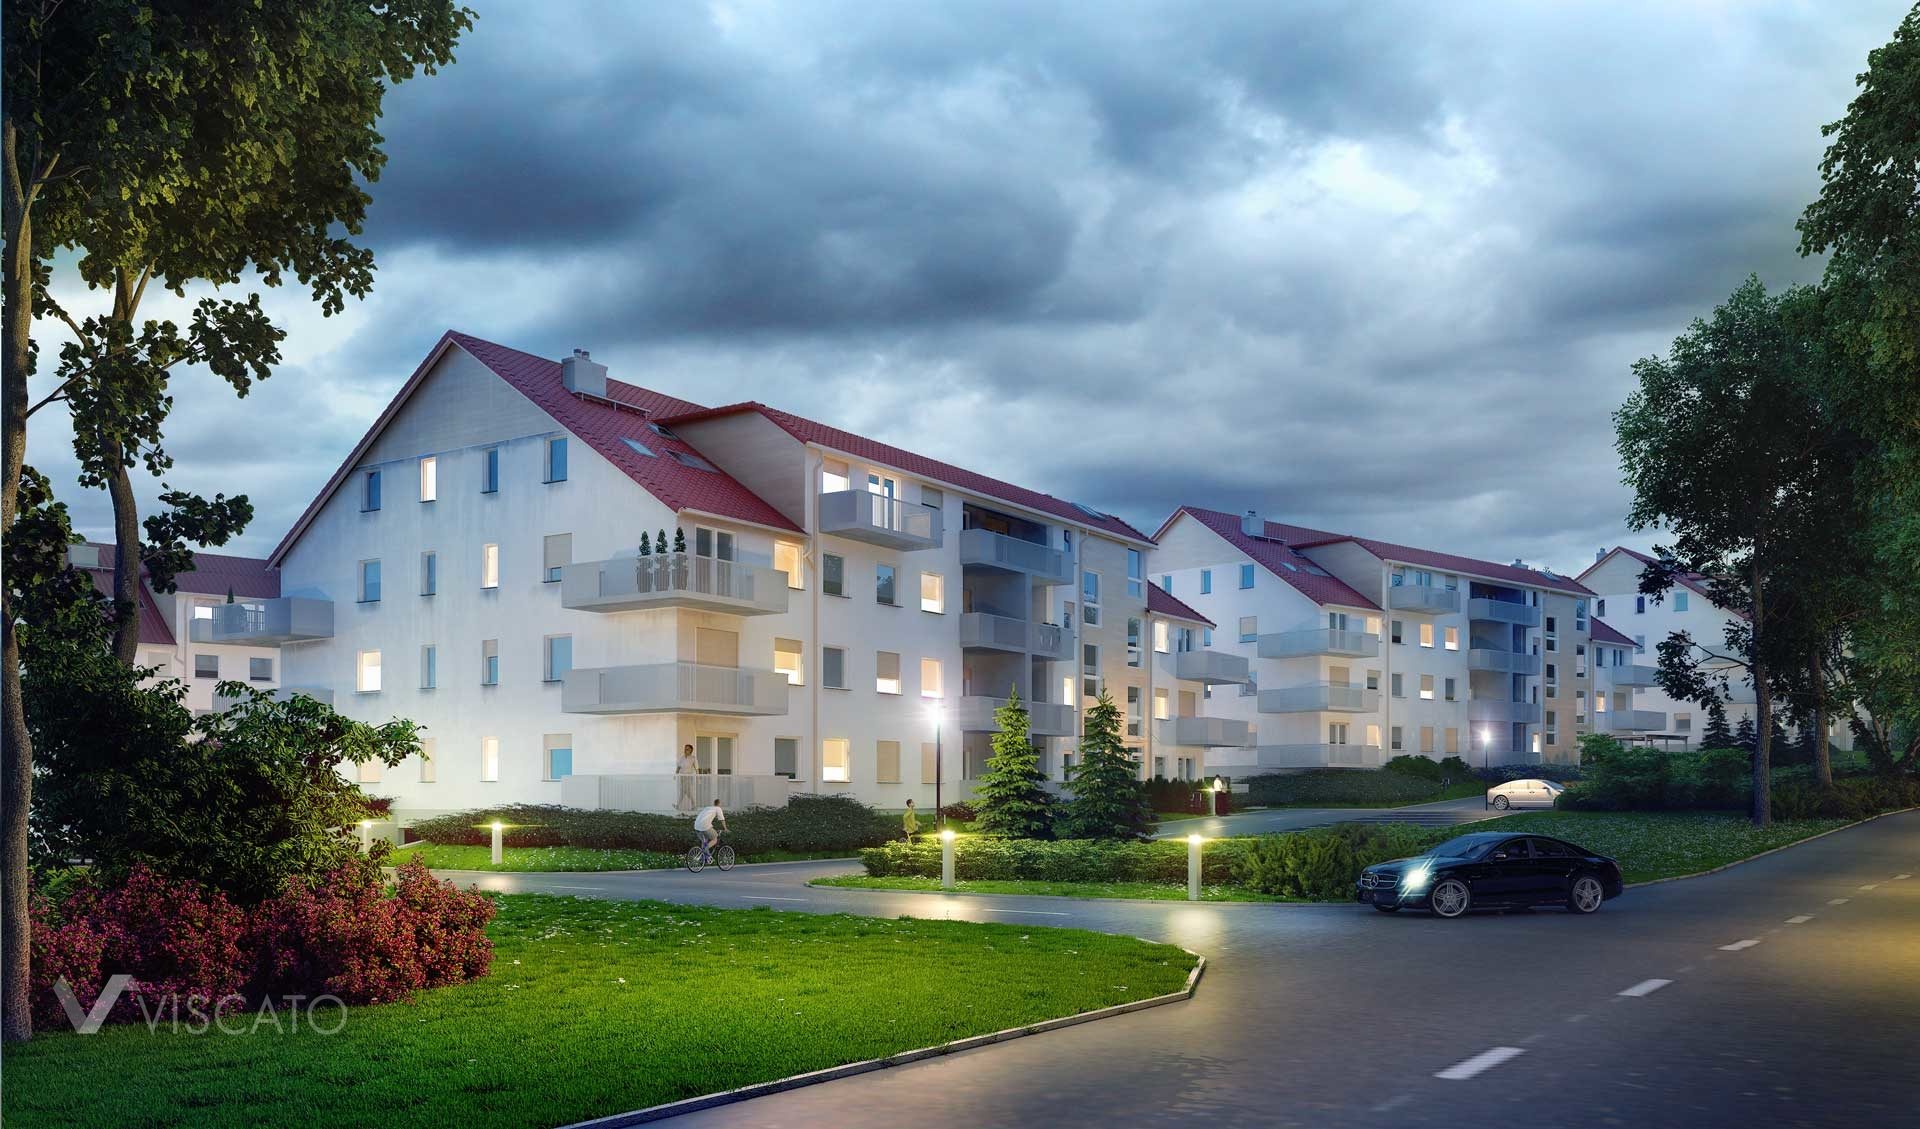 3d Visualization, by night, of housing build in Trzebnica - view on main entrance, car, trees on first plan.